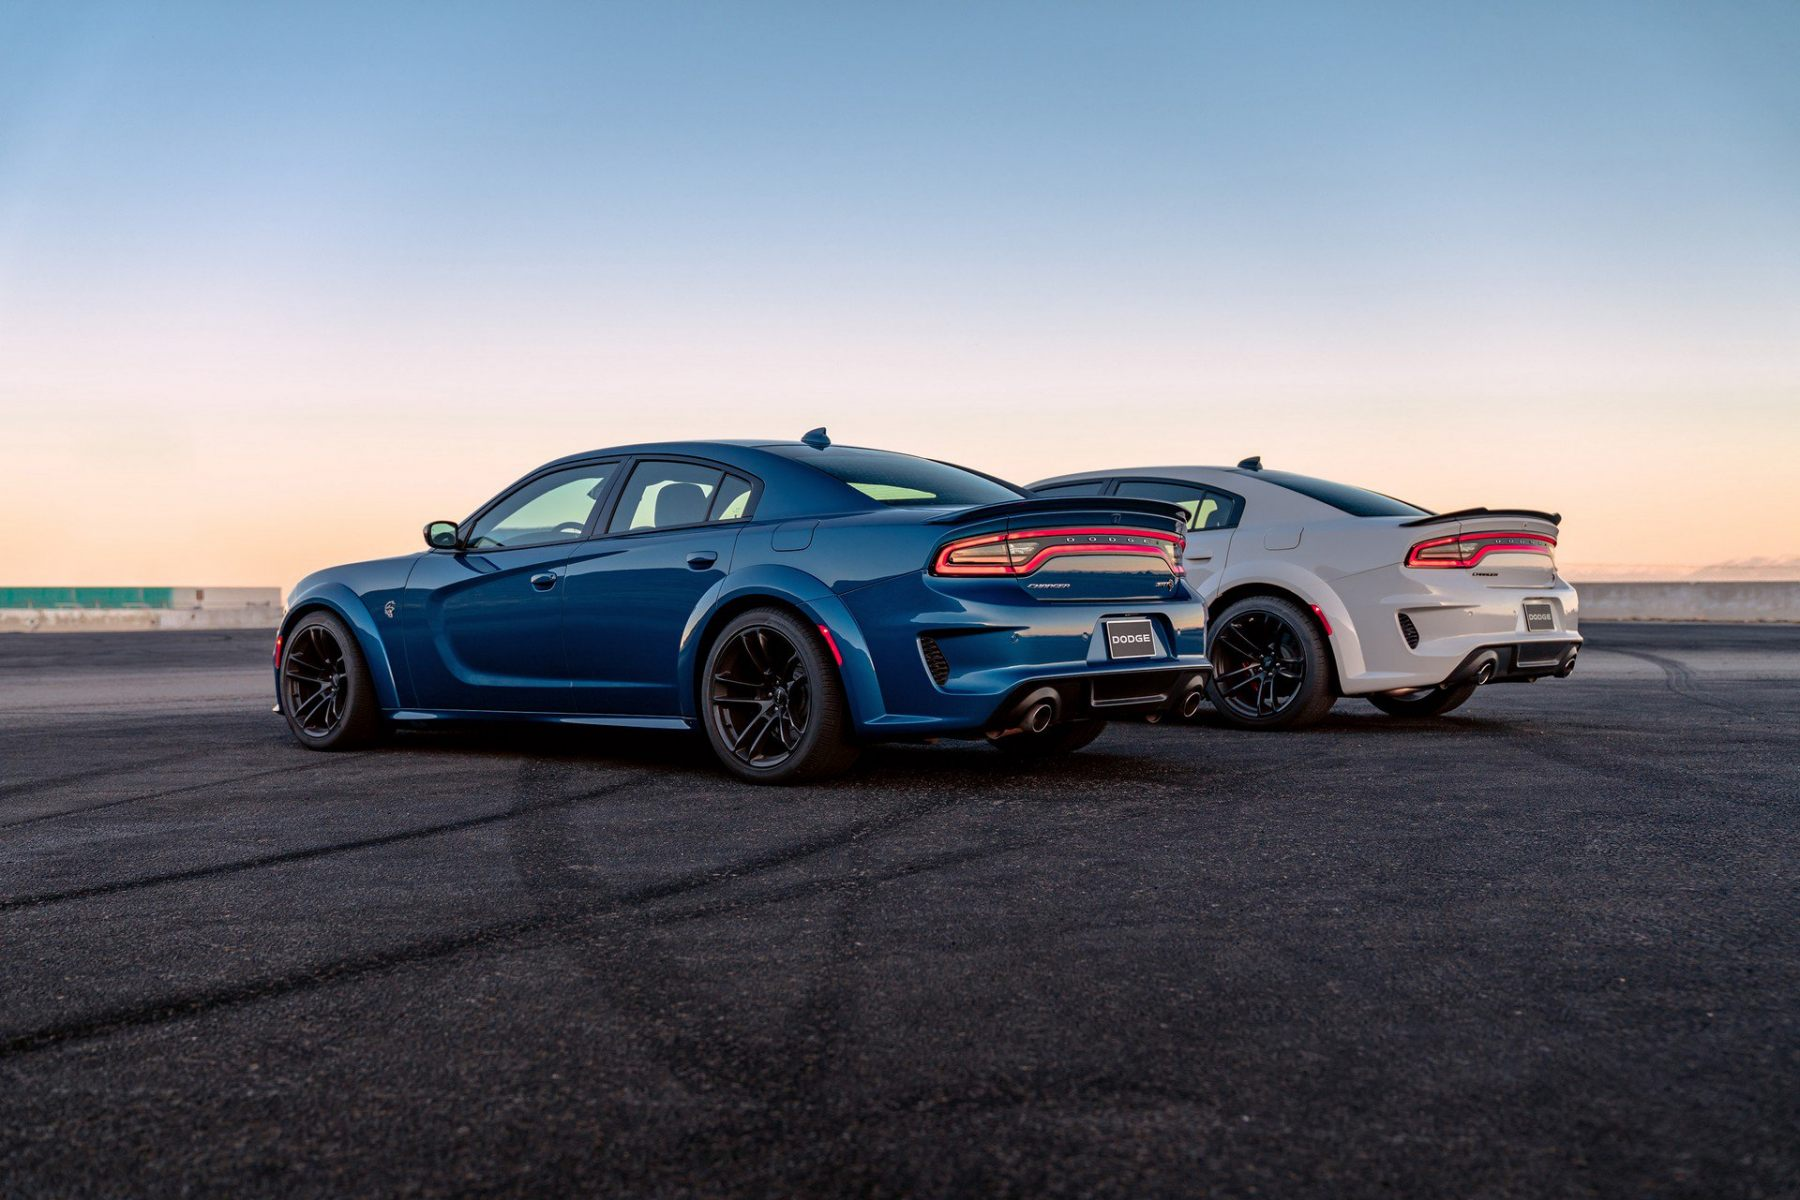 Dodge-Charger-Scat-Pack-SRT-Hellcat-Widebody-2020-4